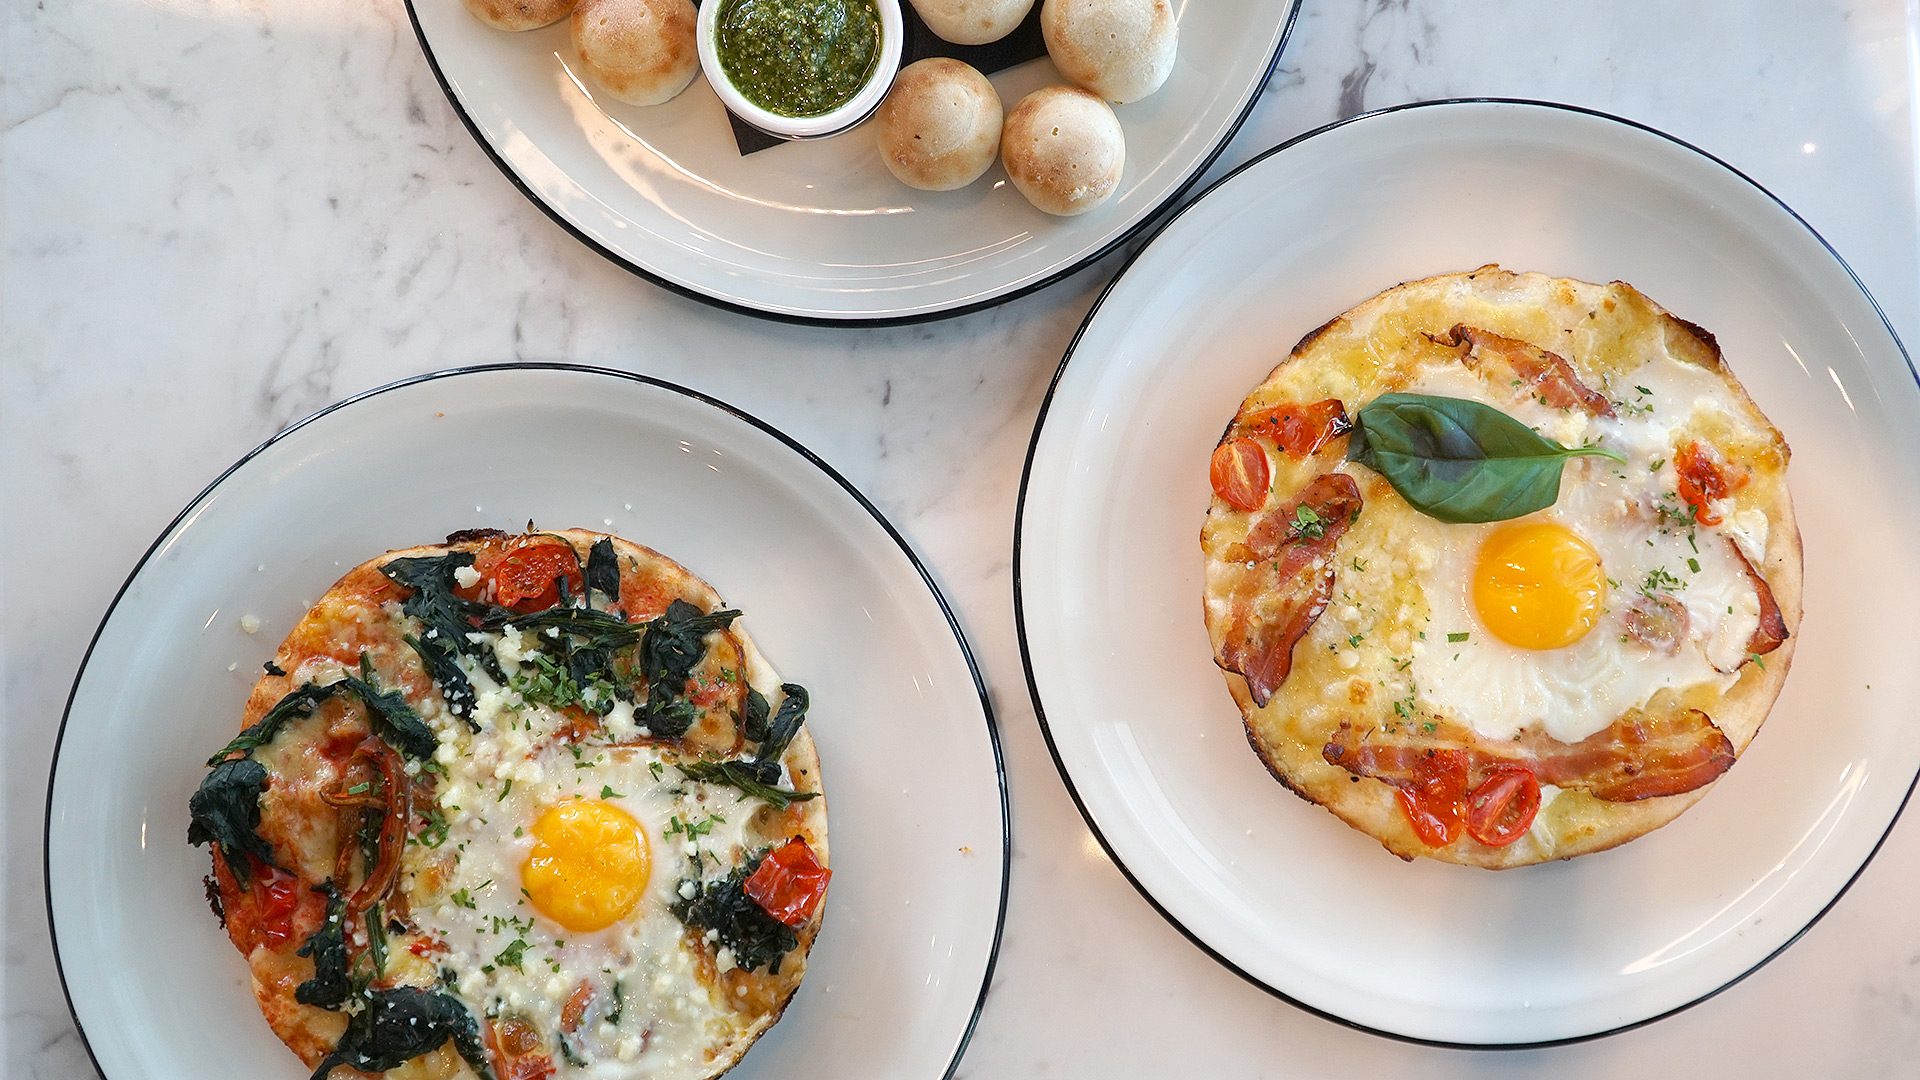 PizzaExpress Singapore - Brunch